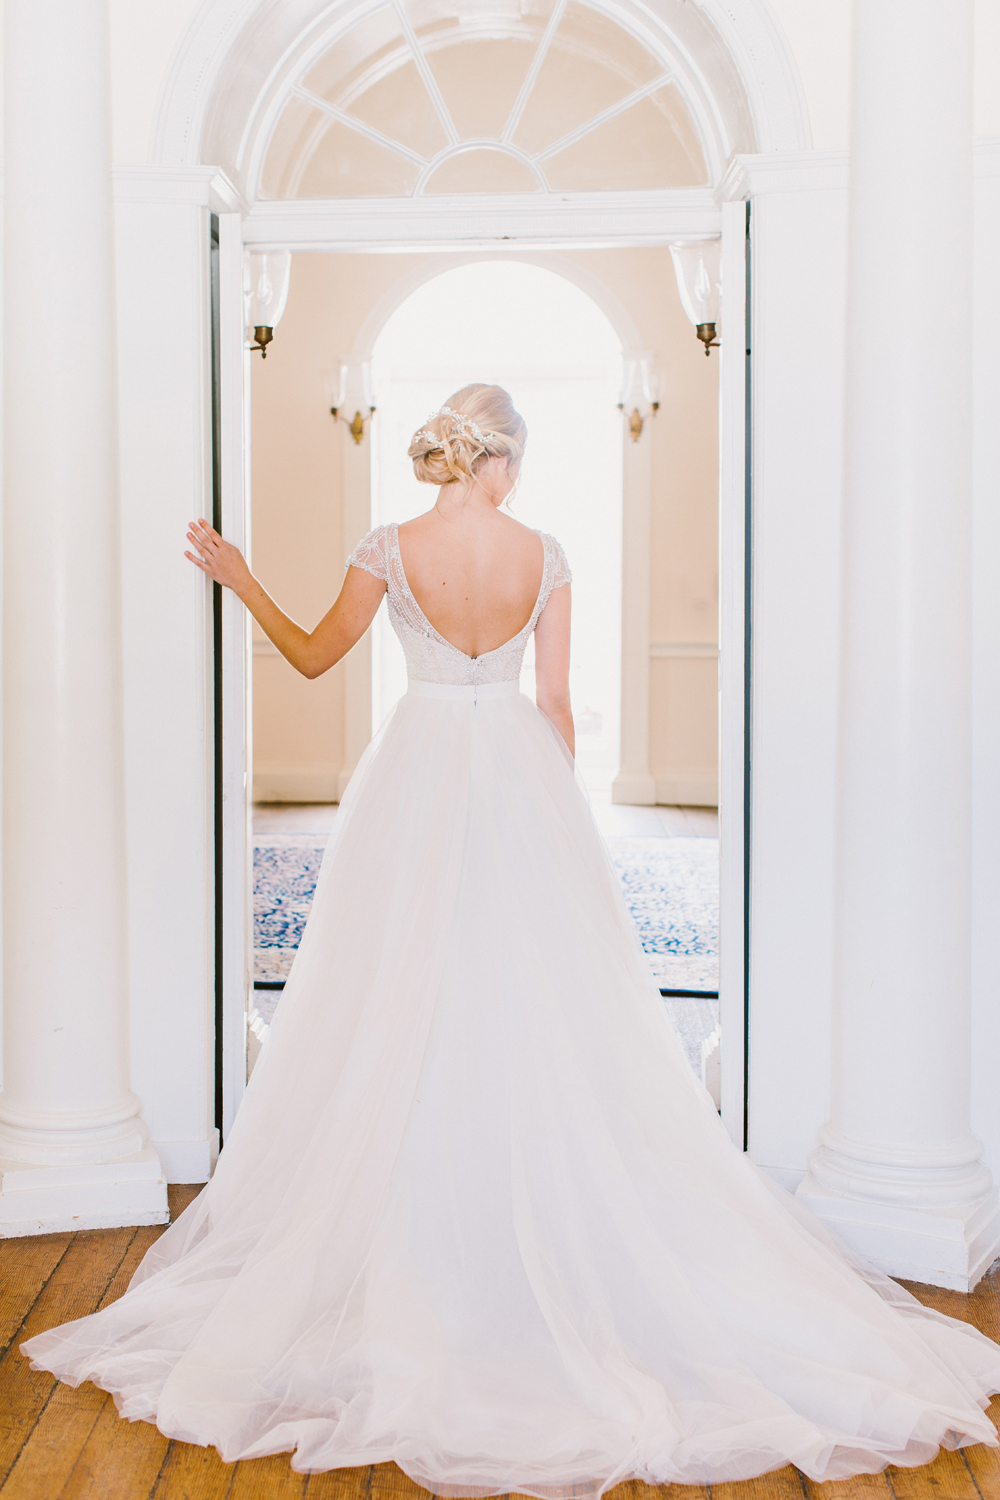 Sinatra Kallin two piece wedding gown - http://ruffledblog.com/drool-worthy-wedding-gowns-we-cant-stop-looking-at photo Redfield Photography